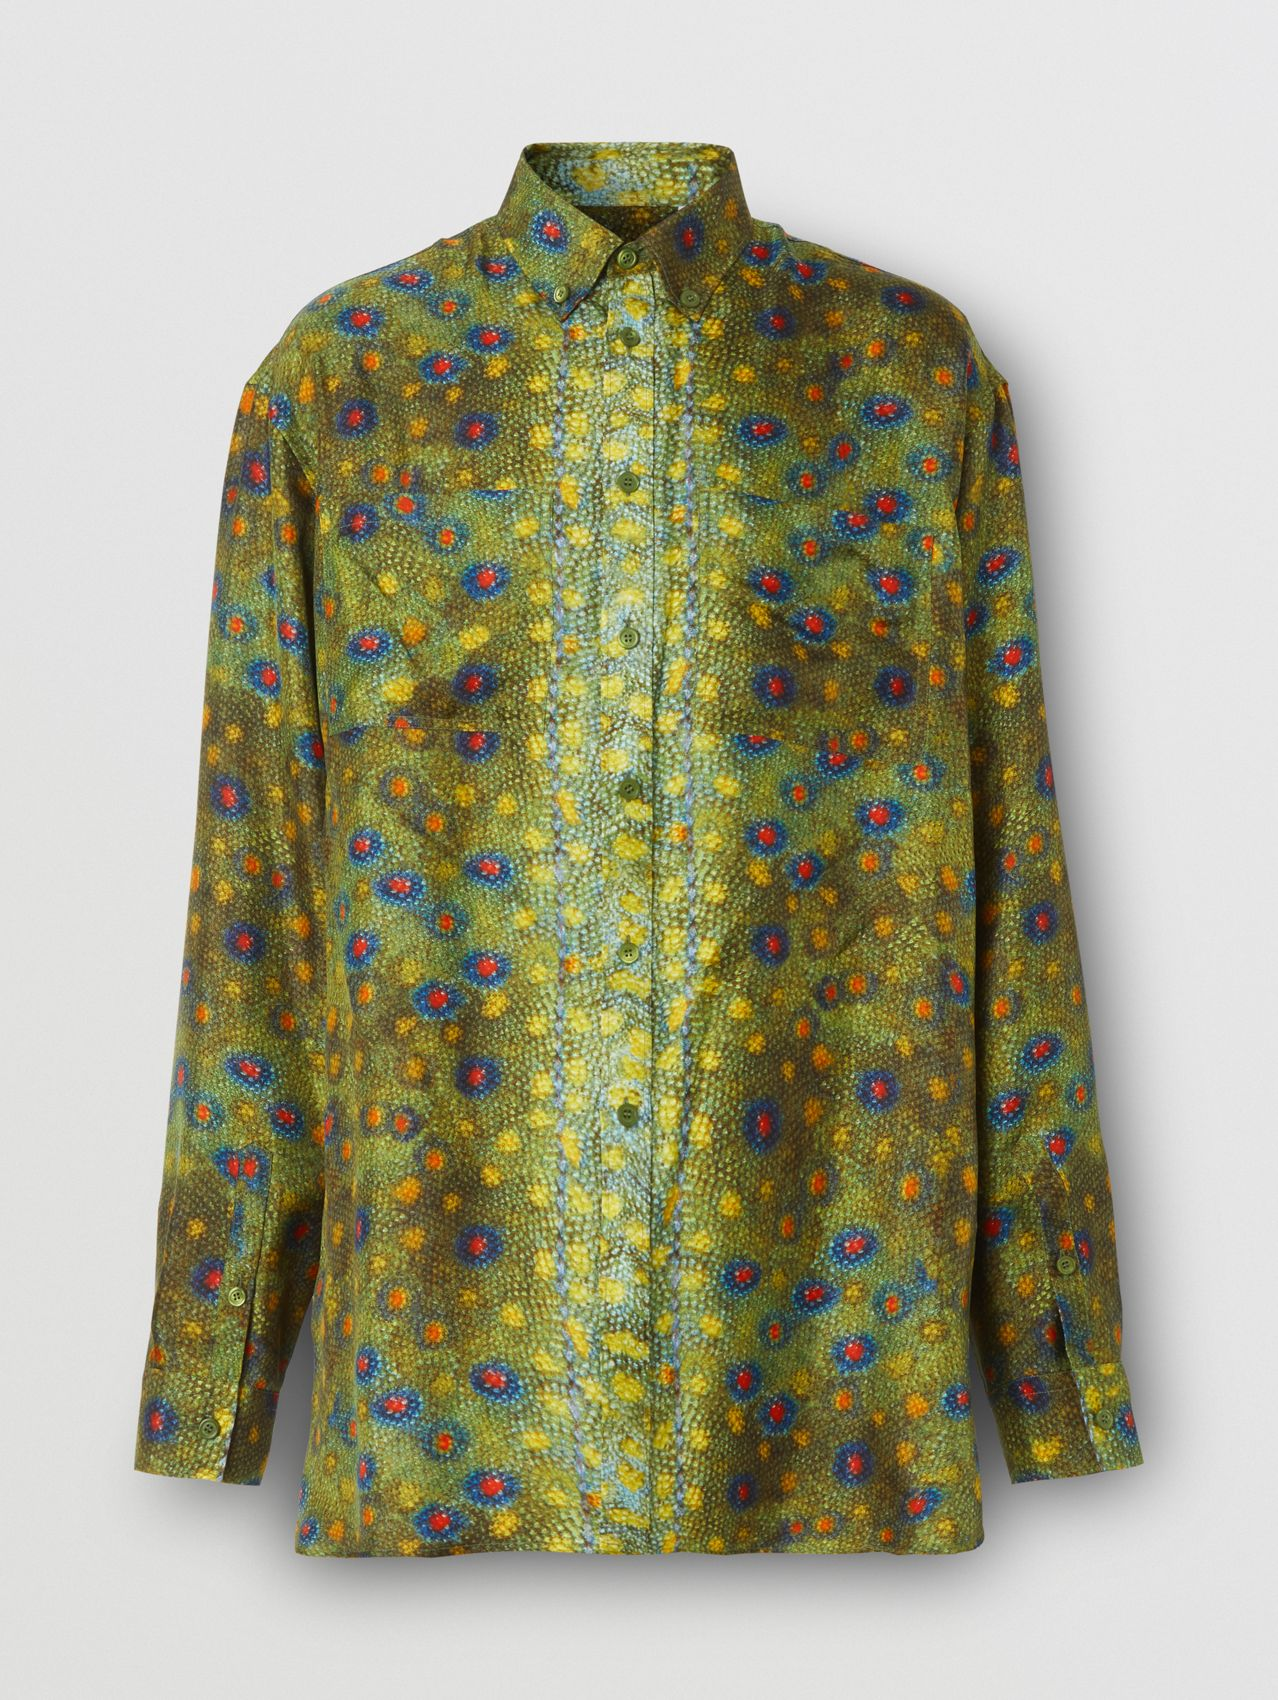 Fish-scale Print Silk Shirt in Olive